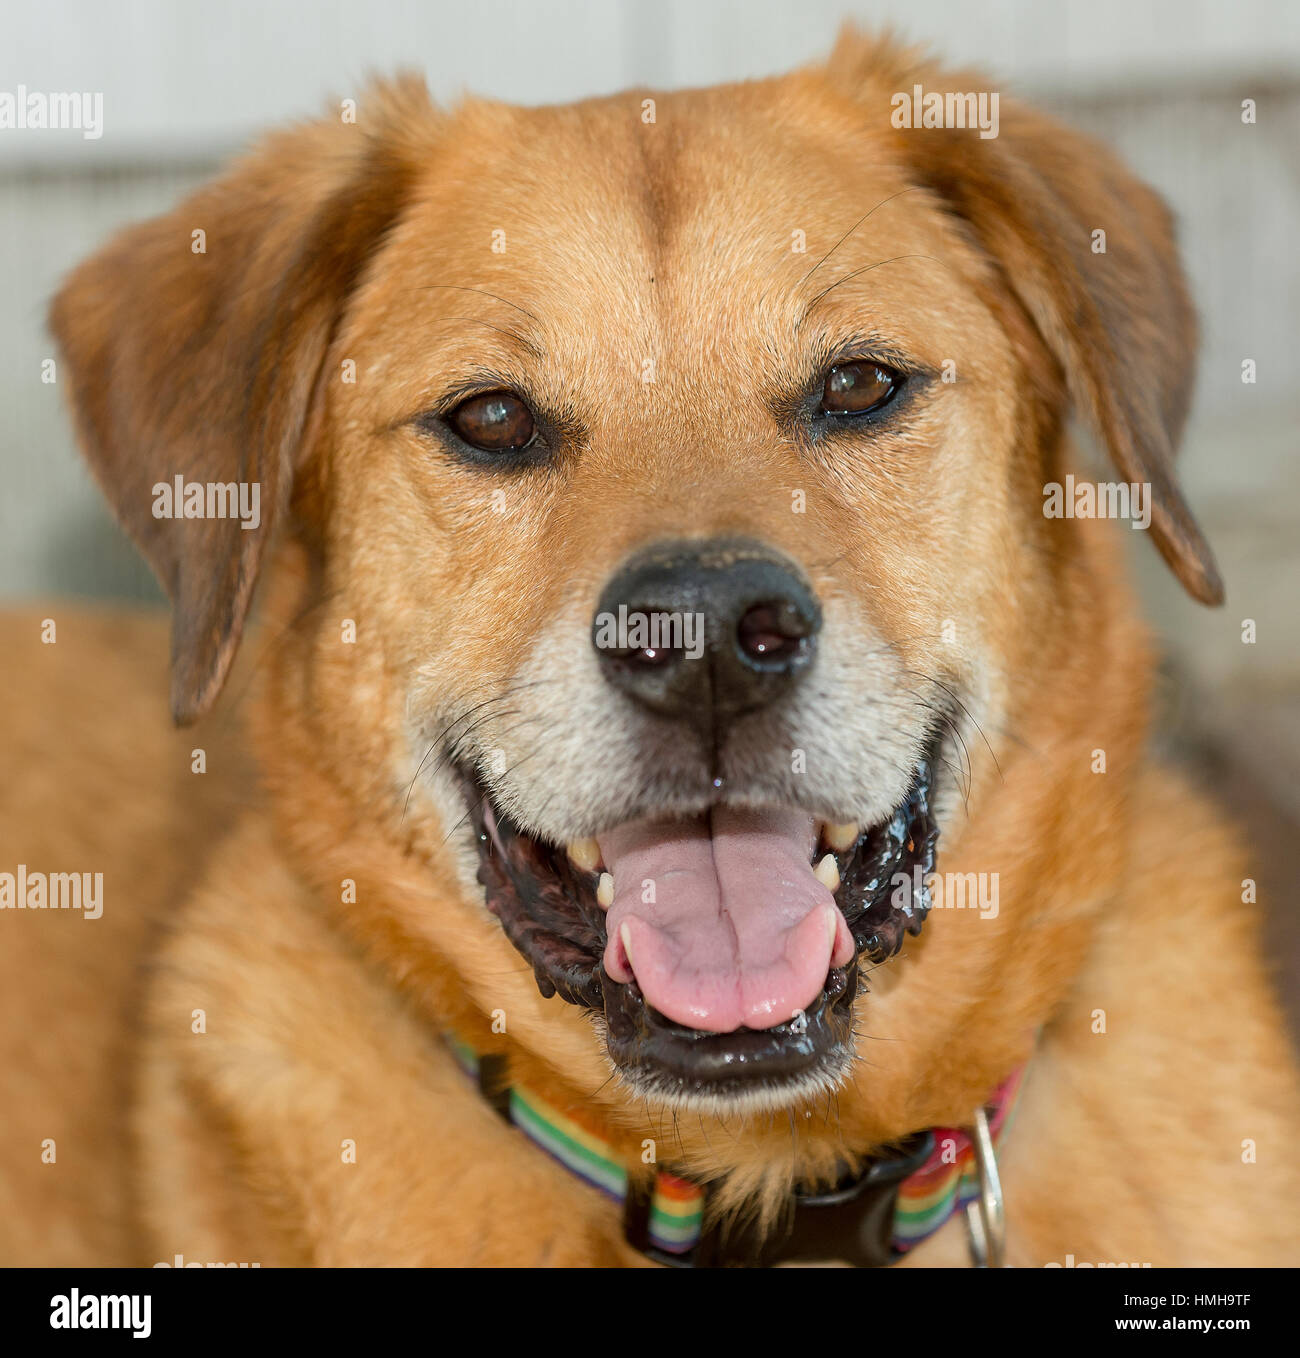 Handsome mixed breed red brown dog floppy ears and smiling at camera - Stock Image